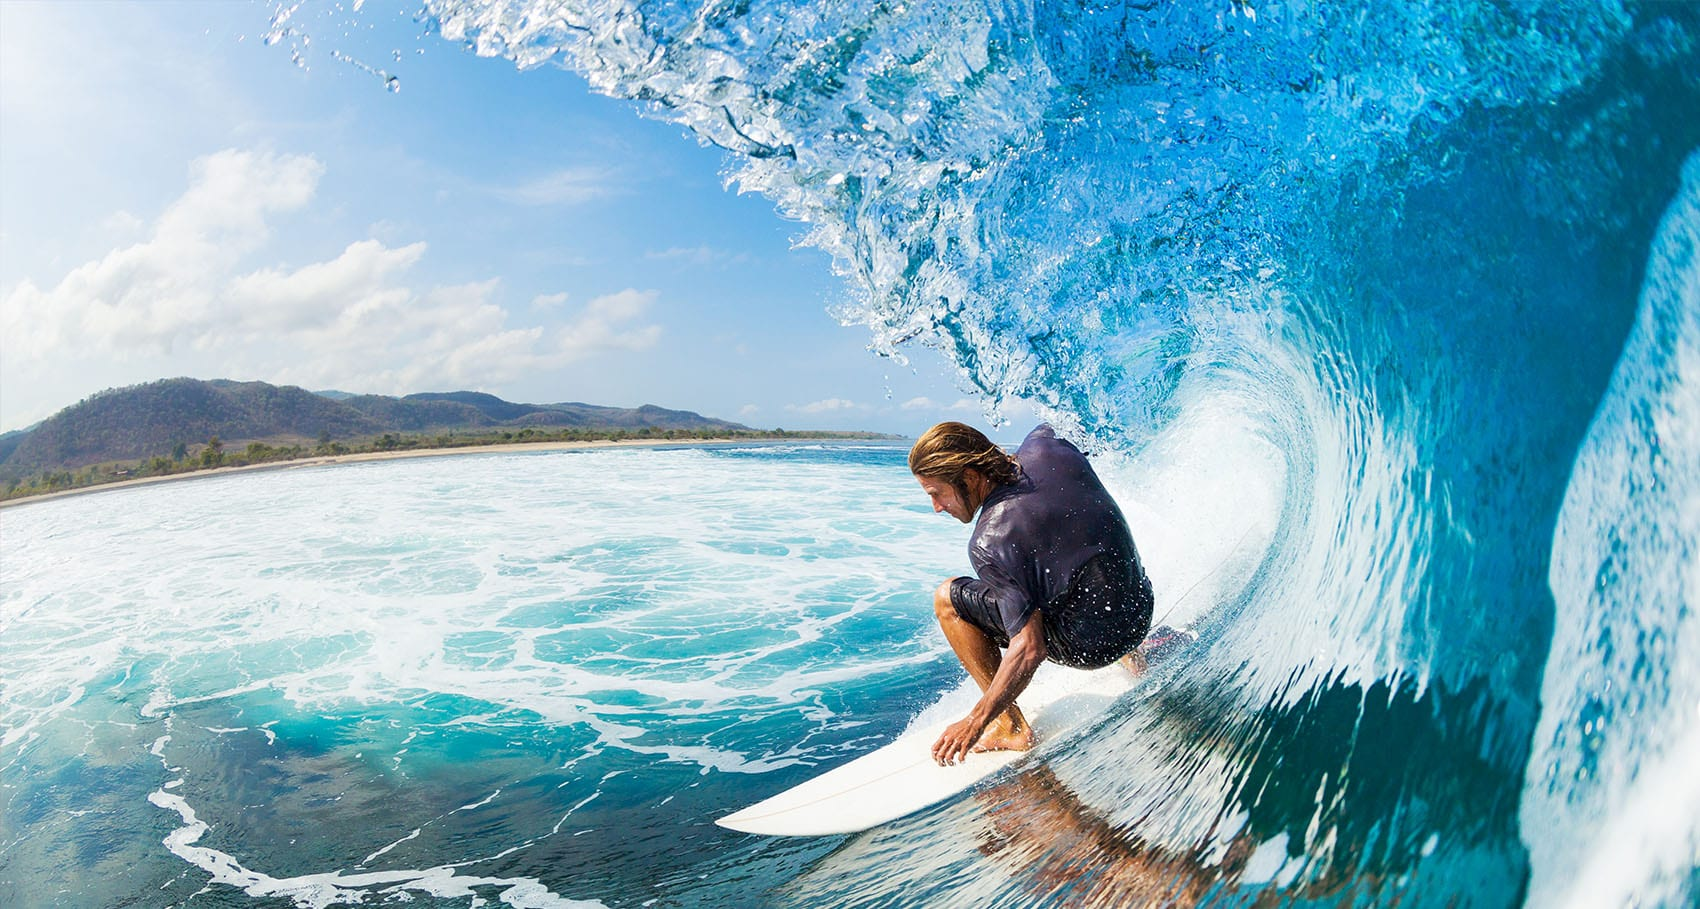 1.-catch-the-wave-5-best-places-to-surf-ppcorn-1